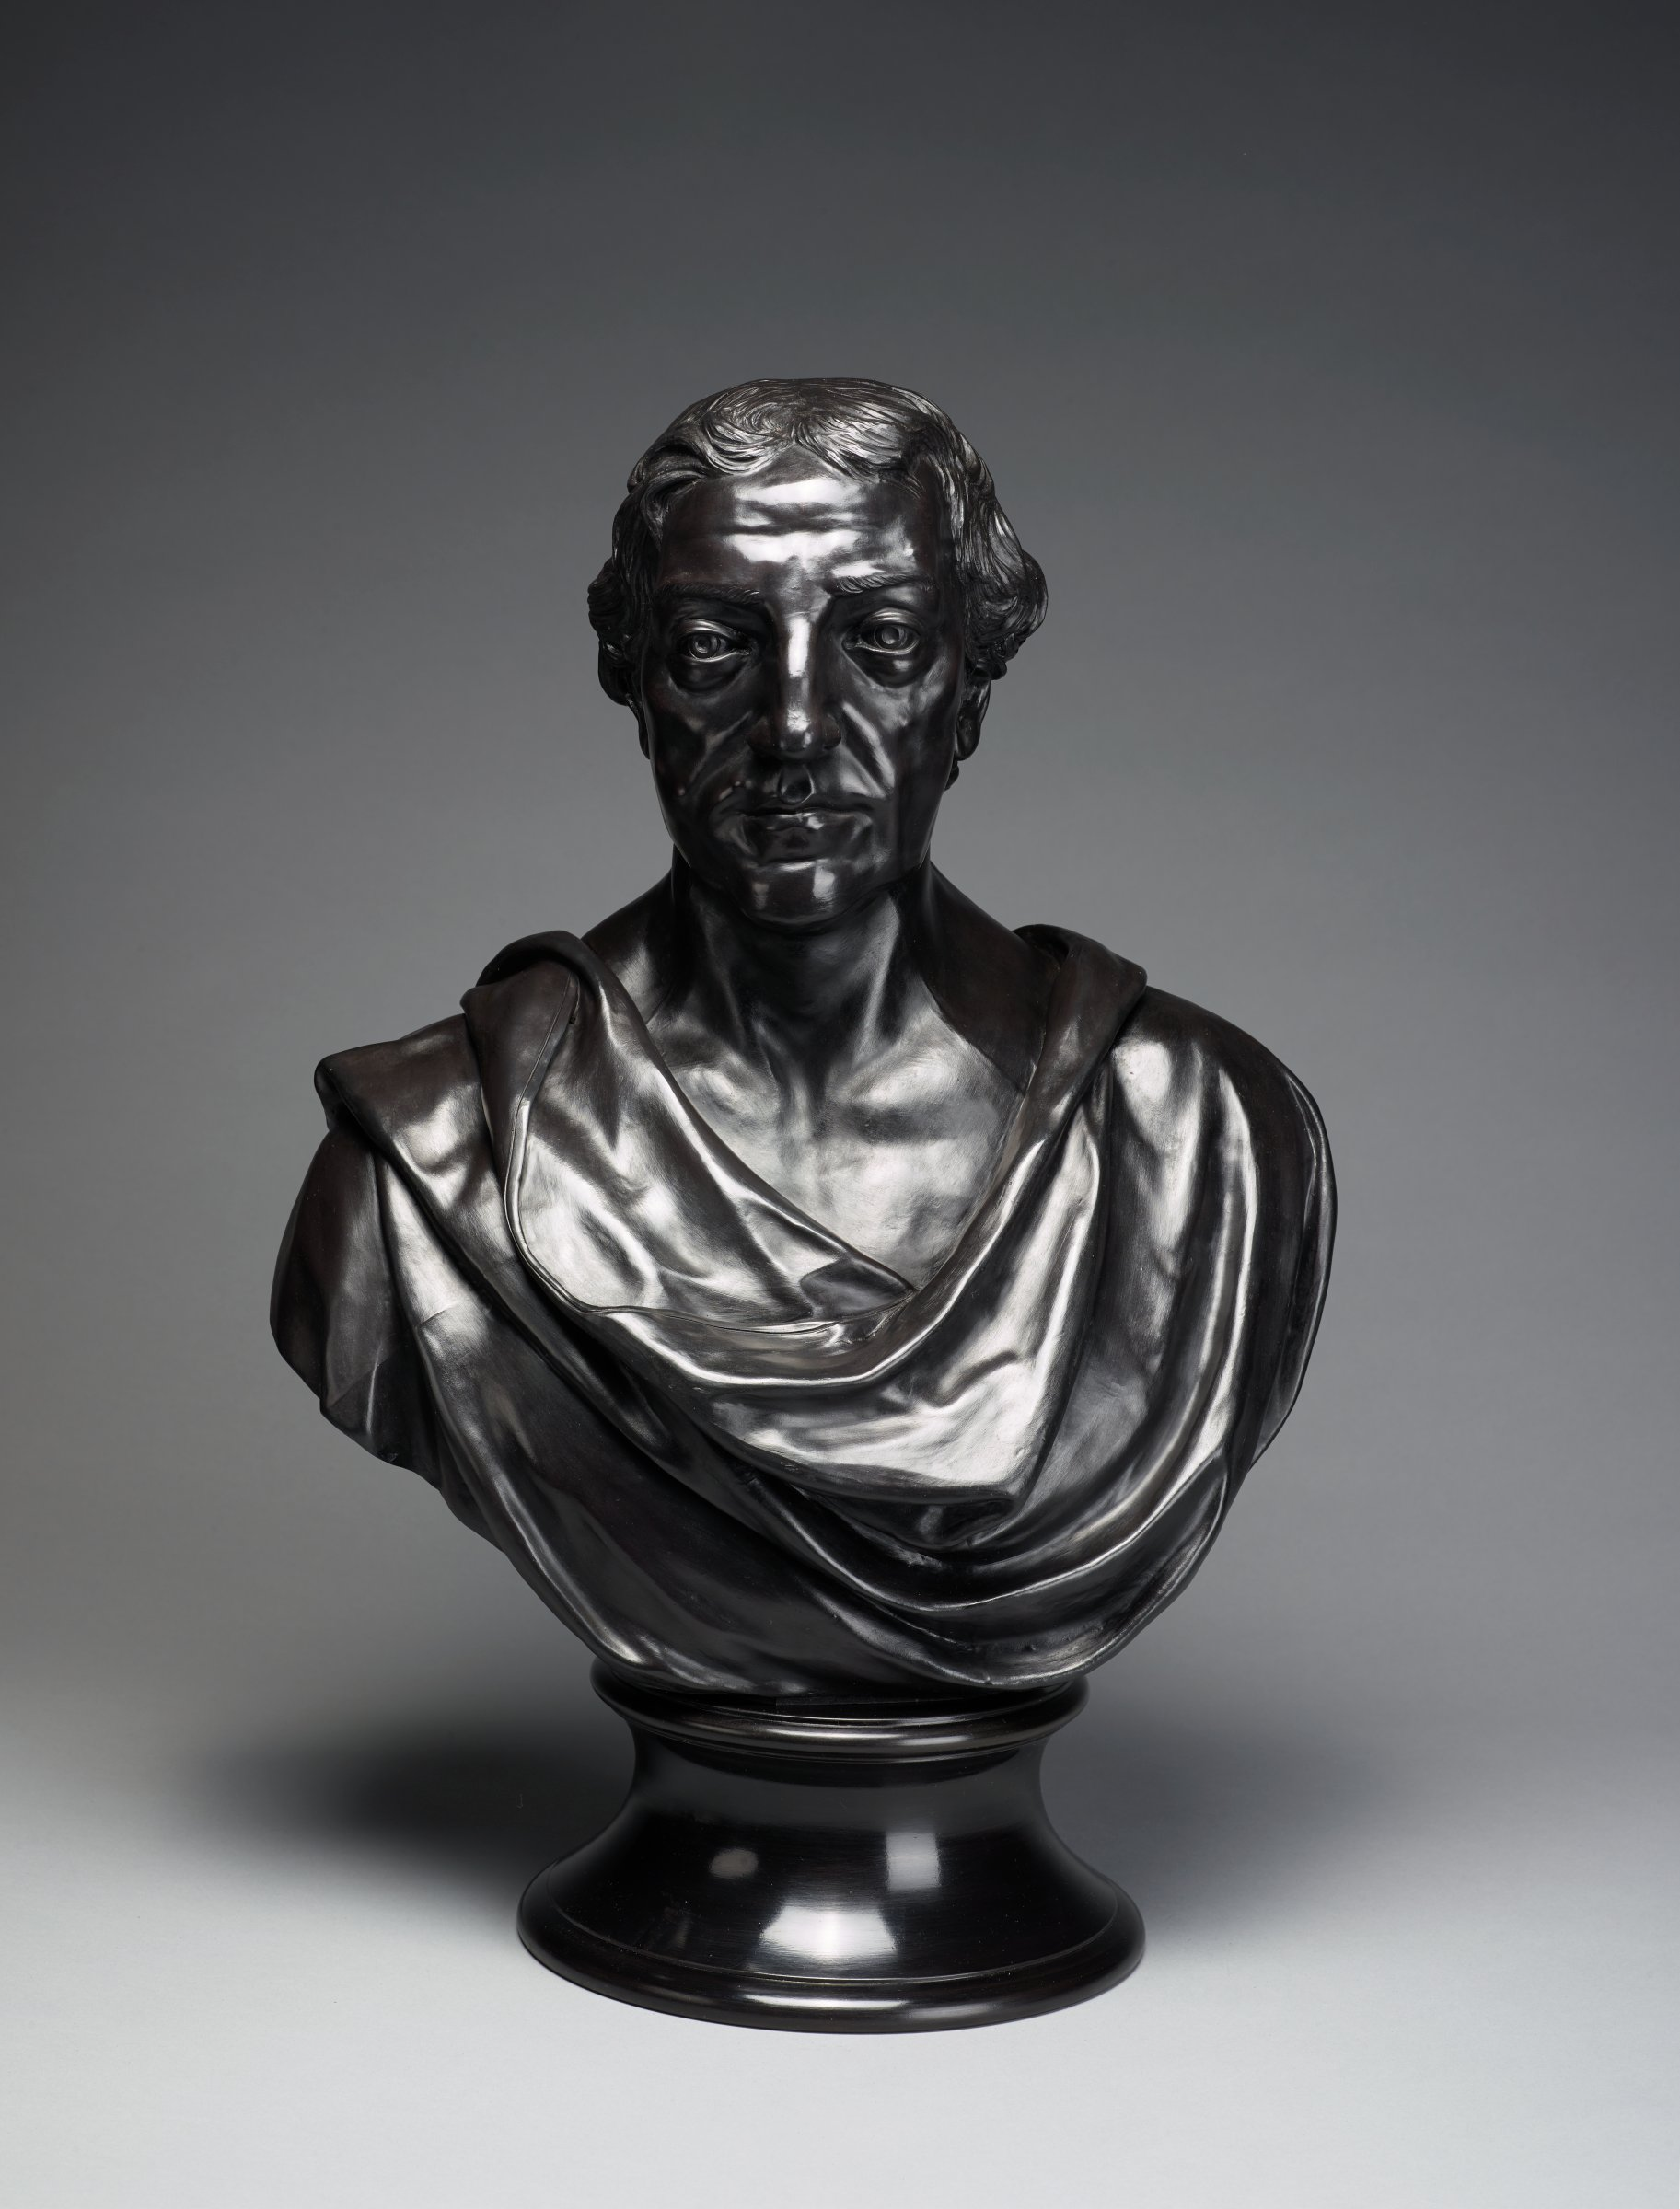 Portrait bust in black basalt of William Pitt, 1st Earl of Chatham in classical drapery on round socle (probably not original).